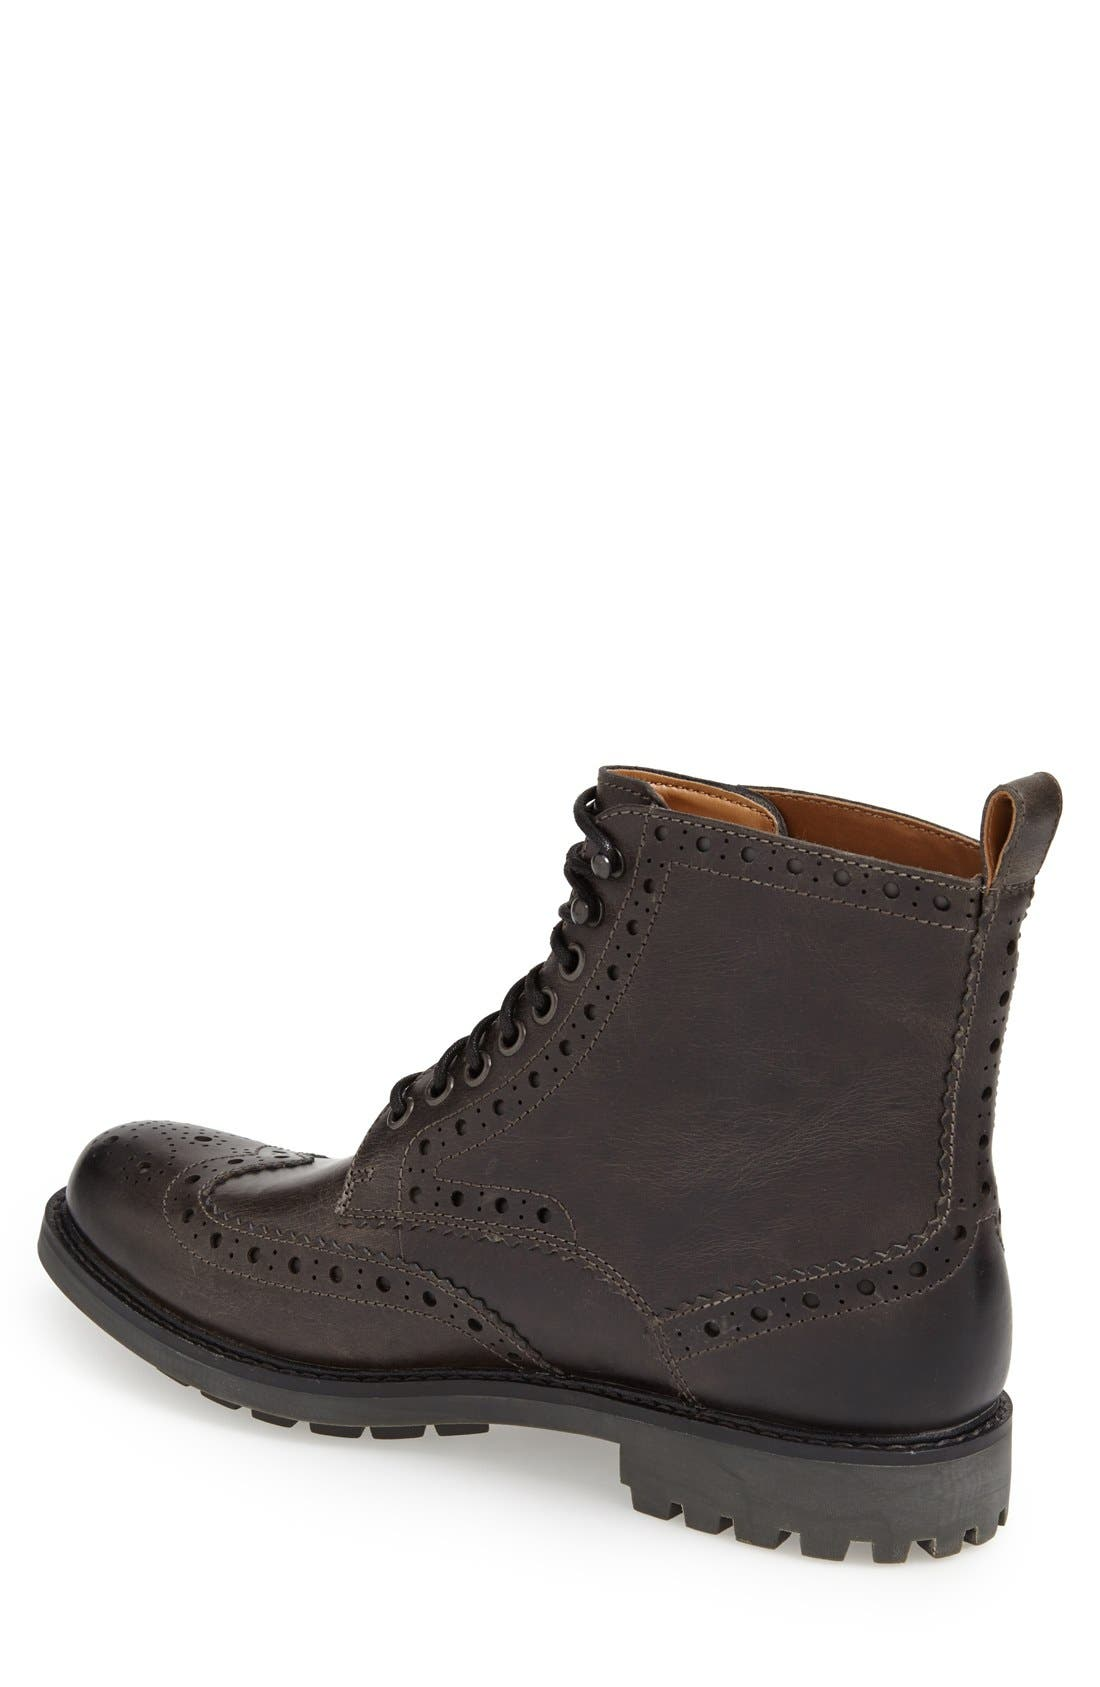 'Montacute Lord' Wingtip Boot,                             Alternate thumbnail 3, color,                             020